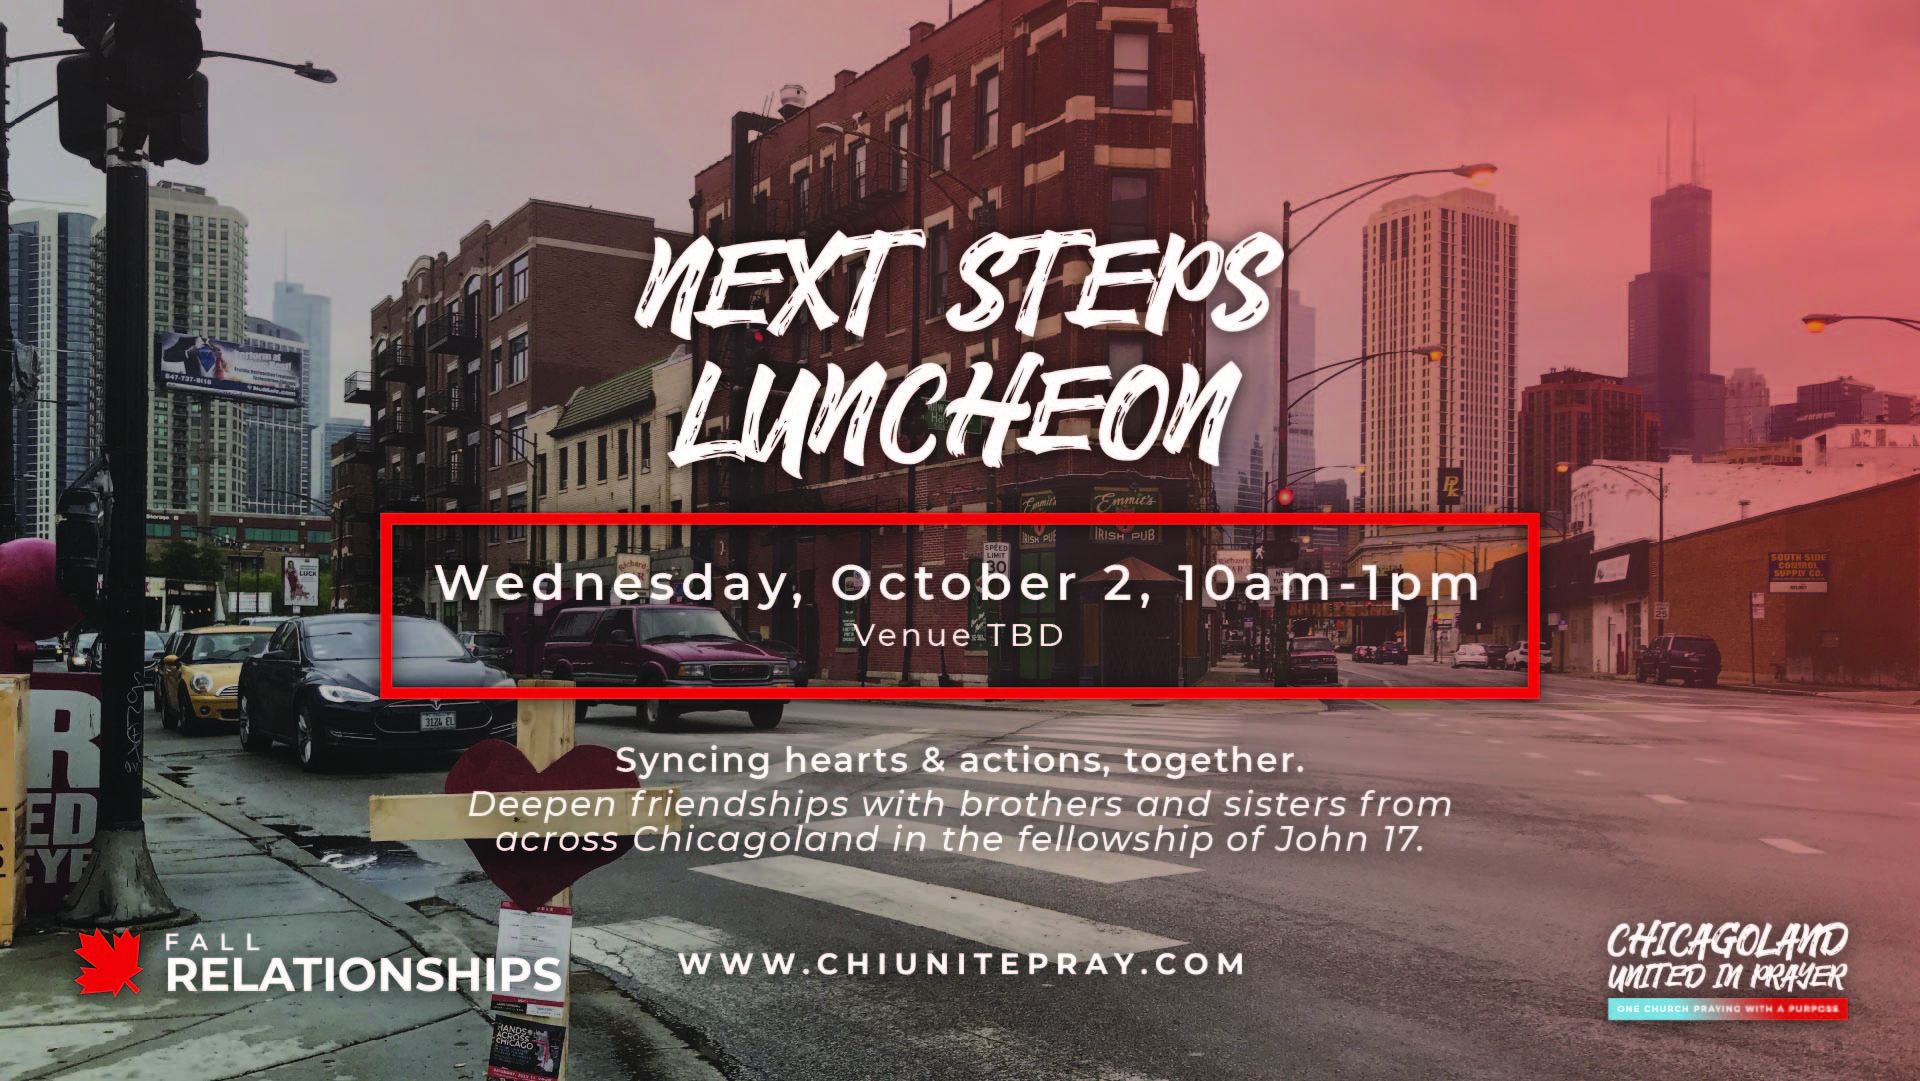 Next Steps Luncheon 2019